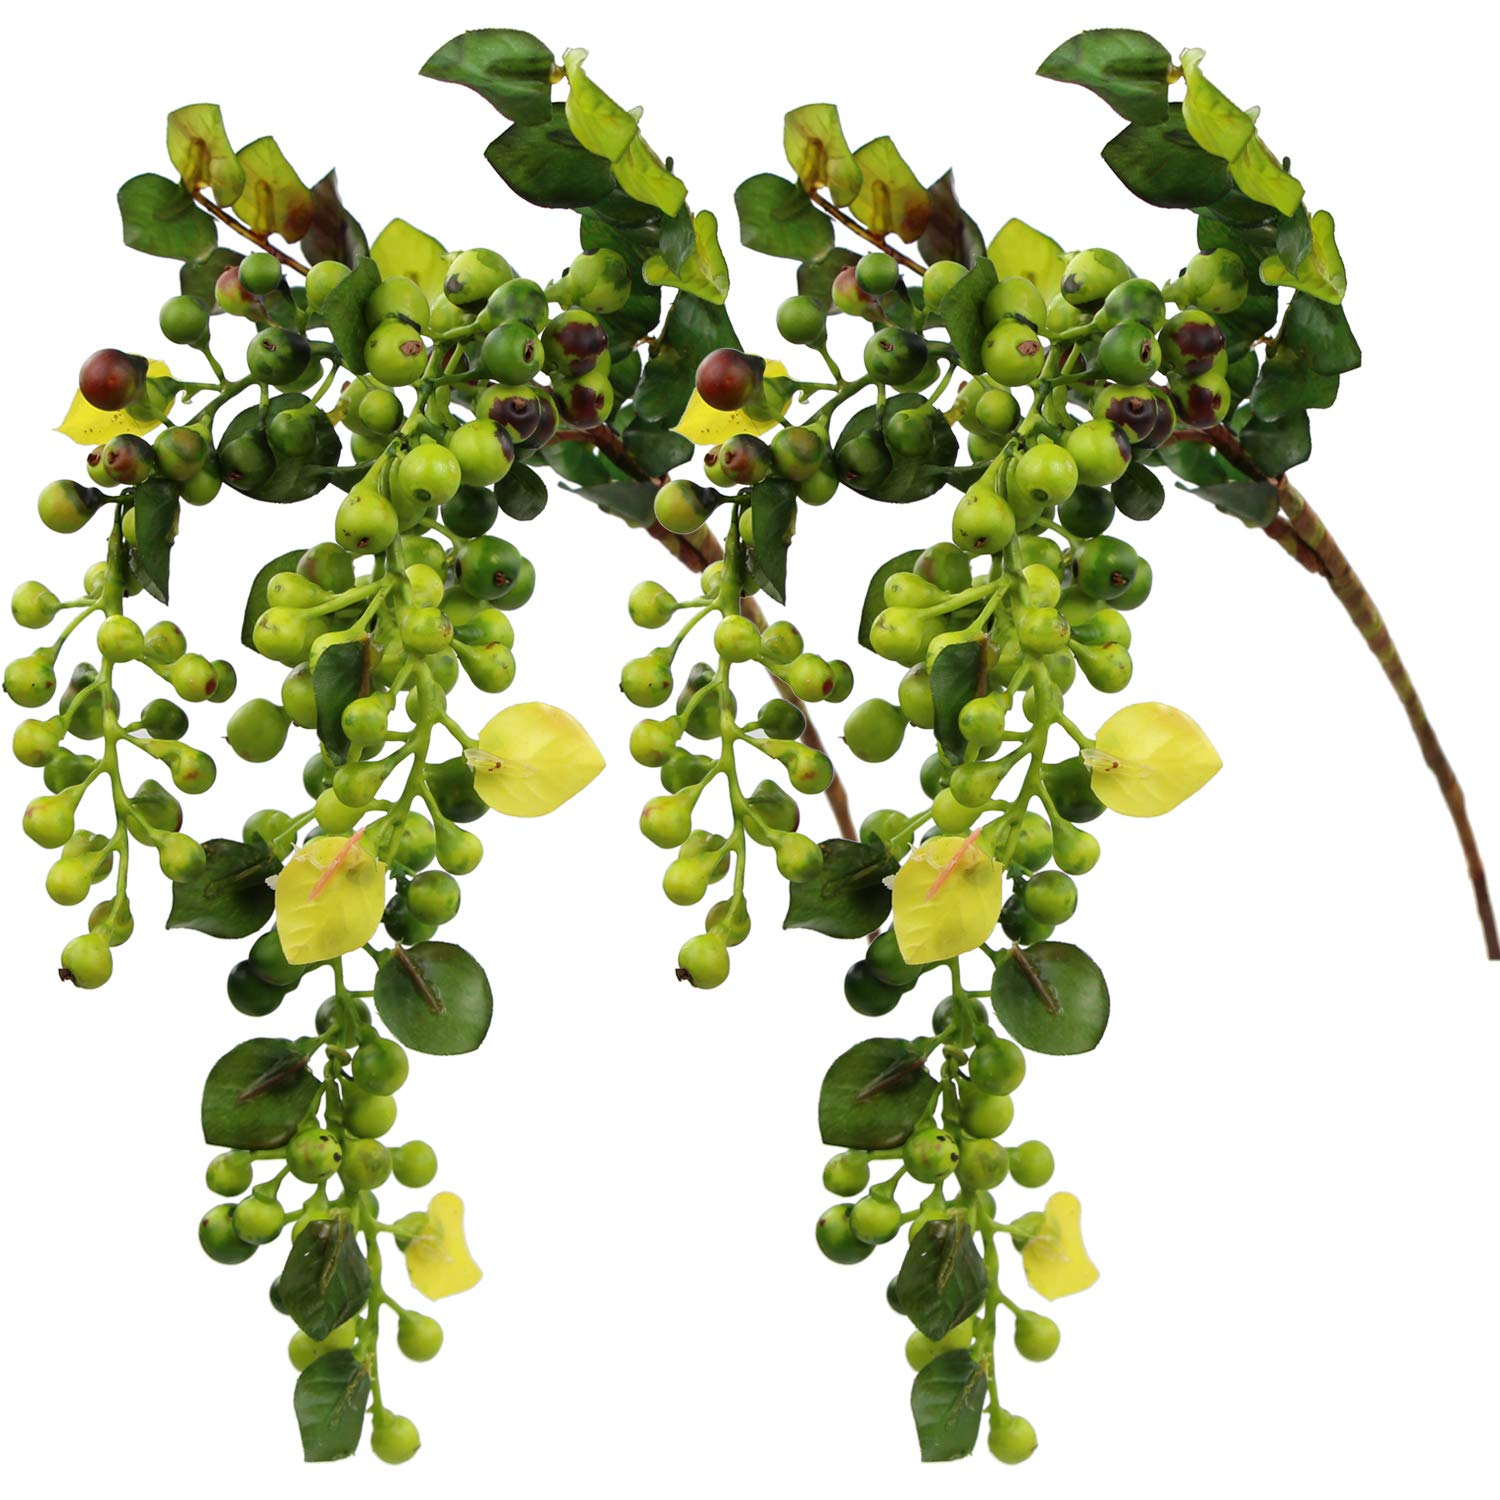 Rinlong Artificial Berries Hanging Spray Frosted for Flowers Arrangement Home Hotel Decor 2pcs per Pack (Green)